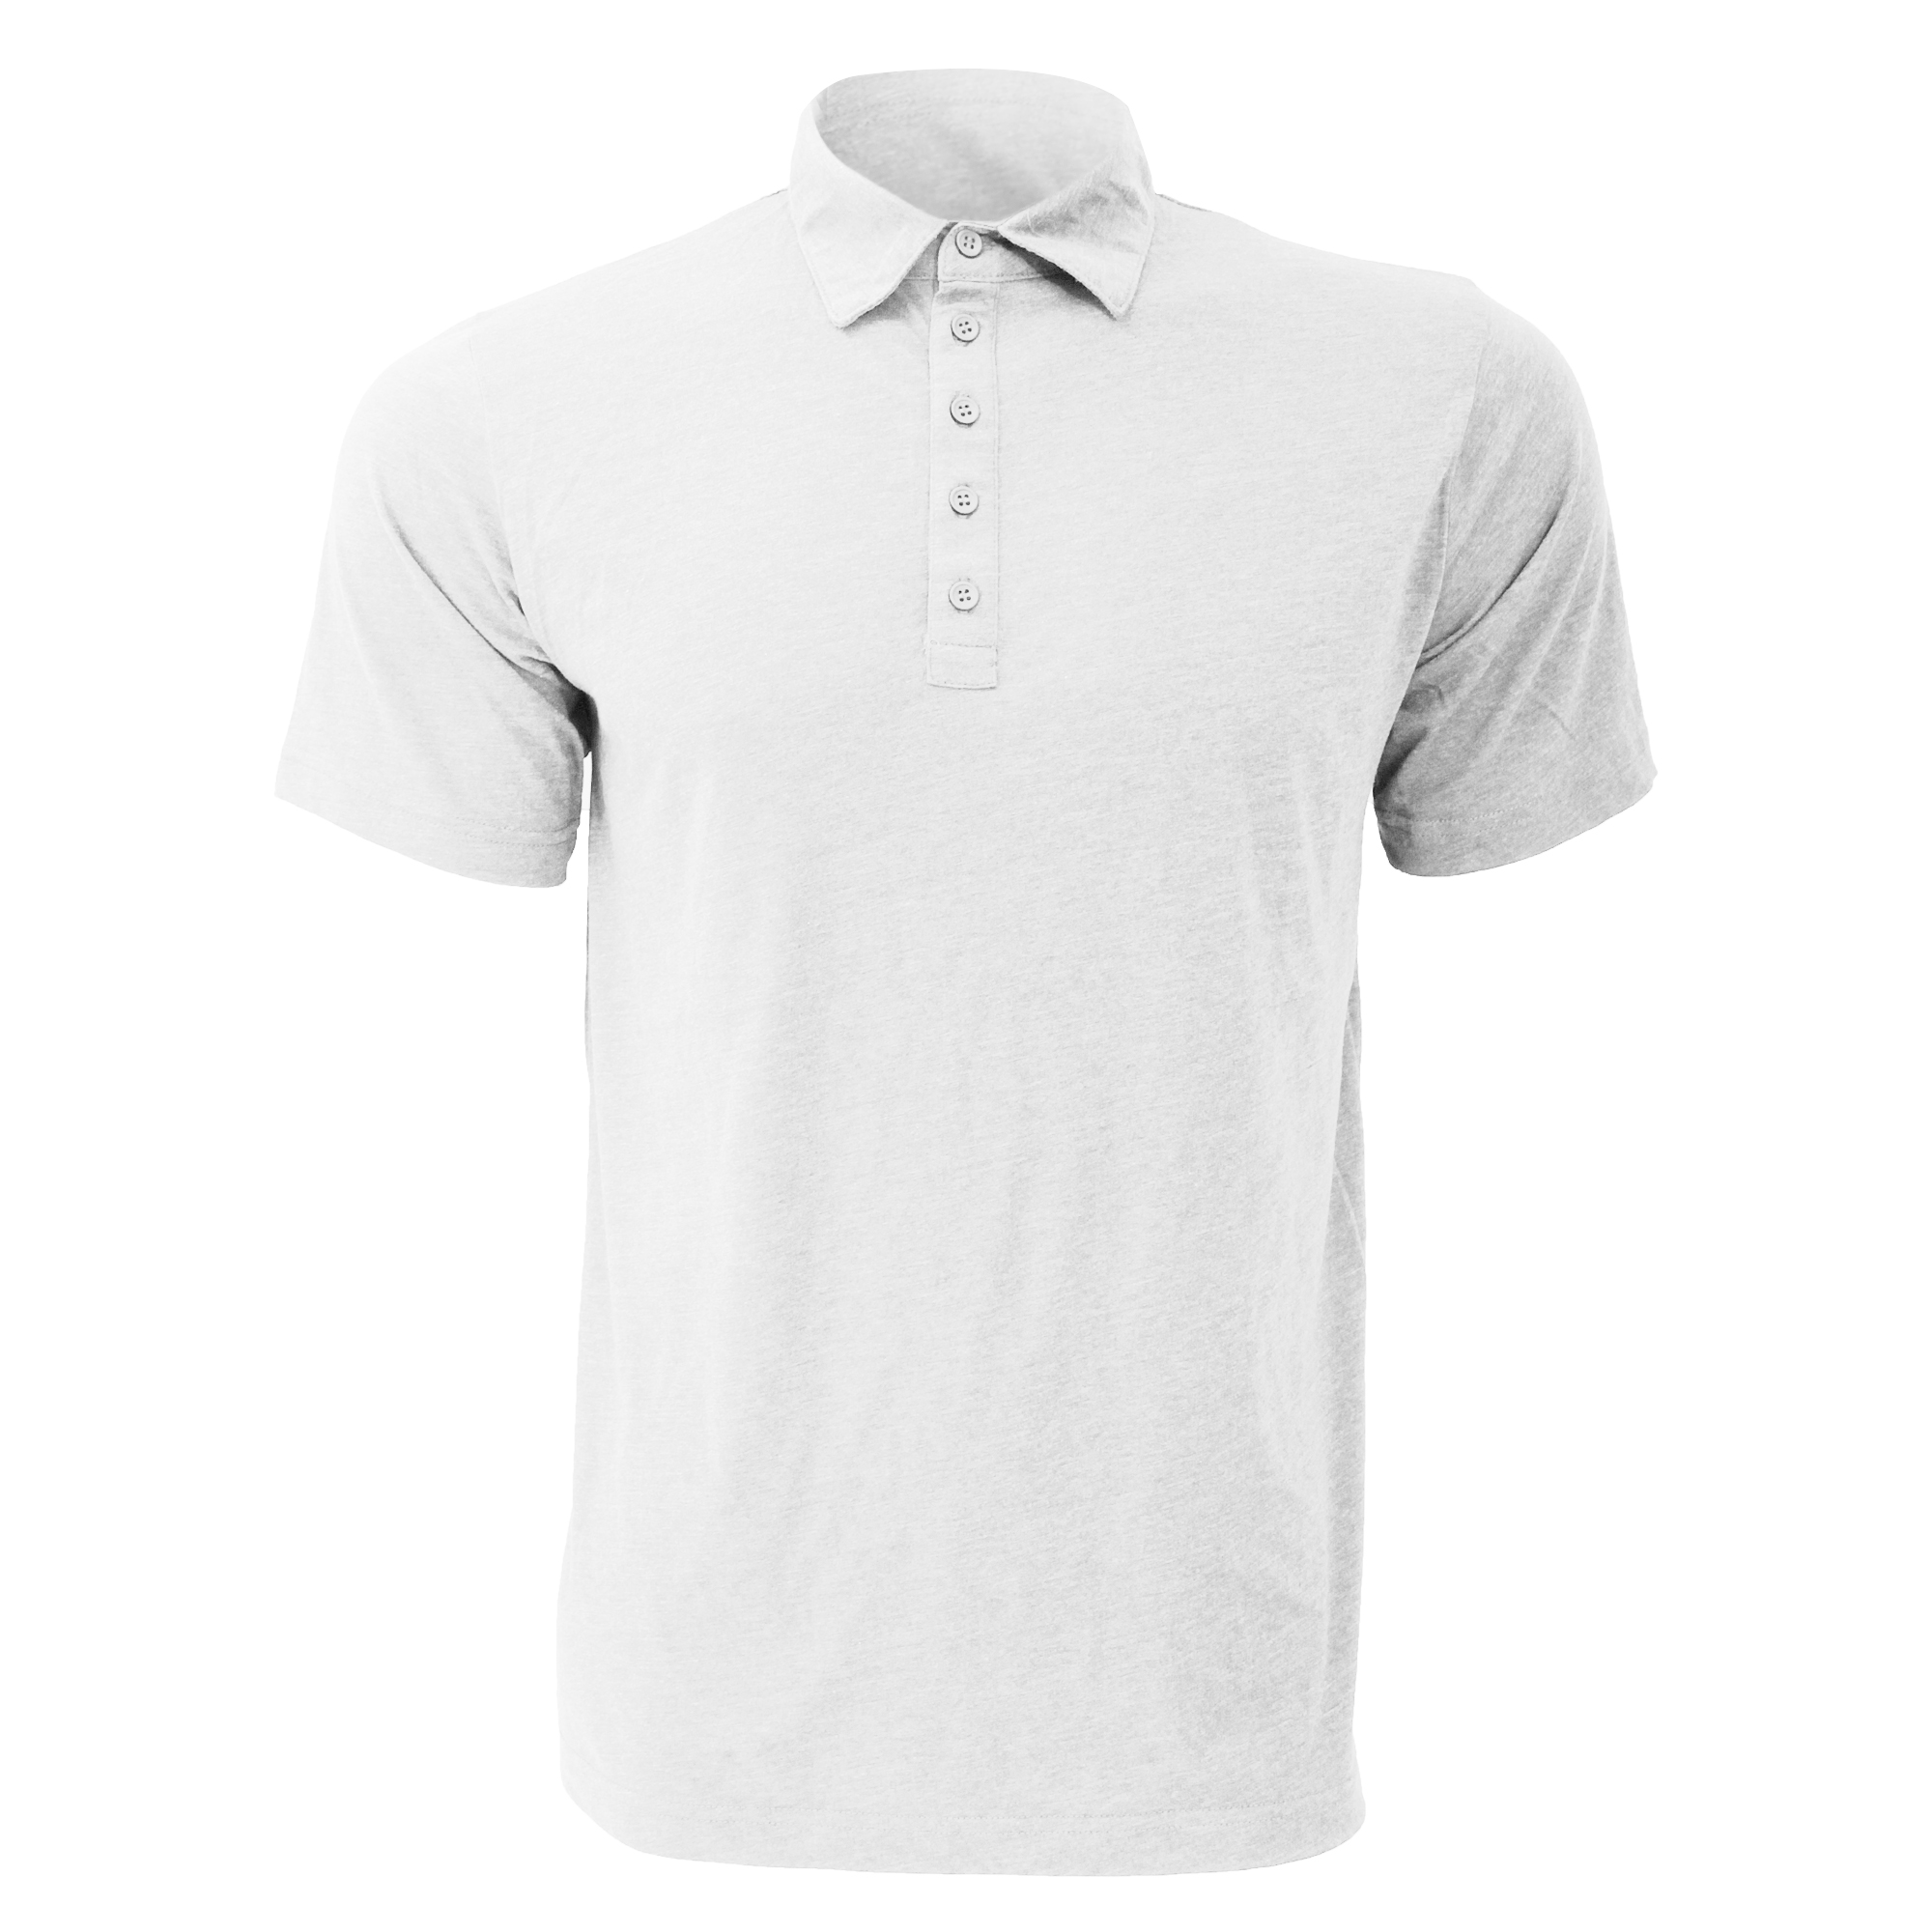 Canvas jersey 5 button polo mens short sleeve polo for Polo shirts without buttons